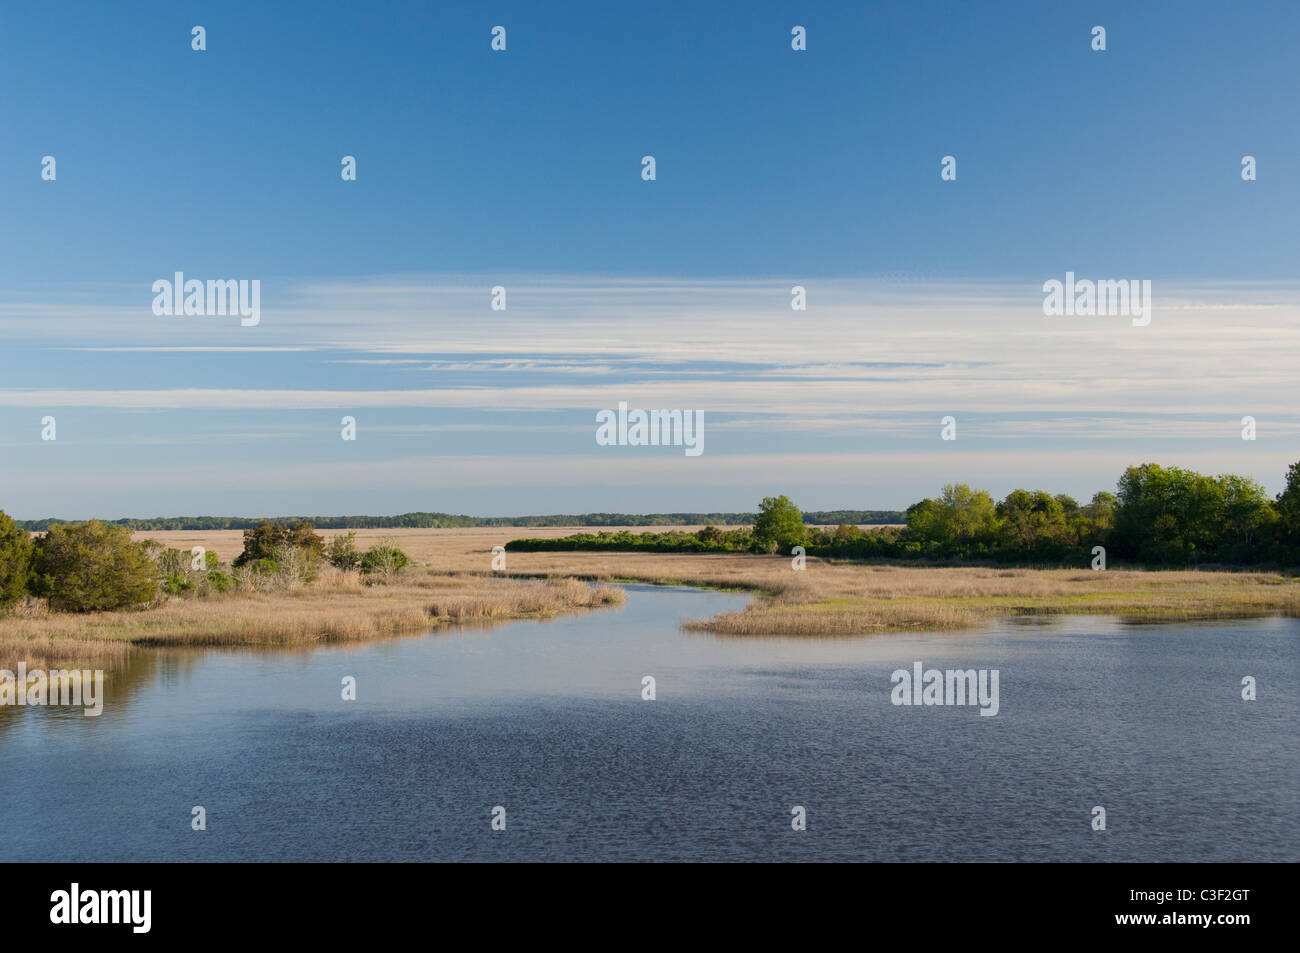 South Carolina. Marsh & wetland habitat in the Atlantic Intracoastal Waterway between Beaufort & Charleston. - Stock Image